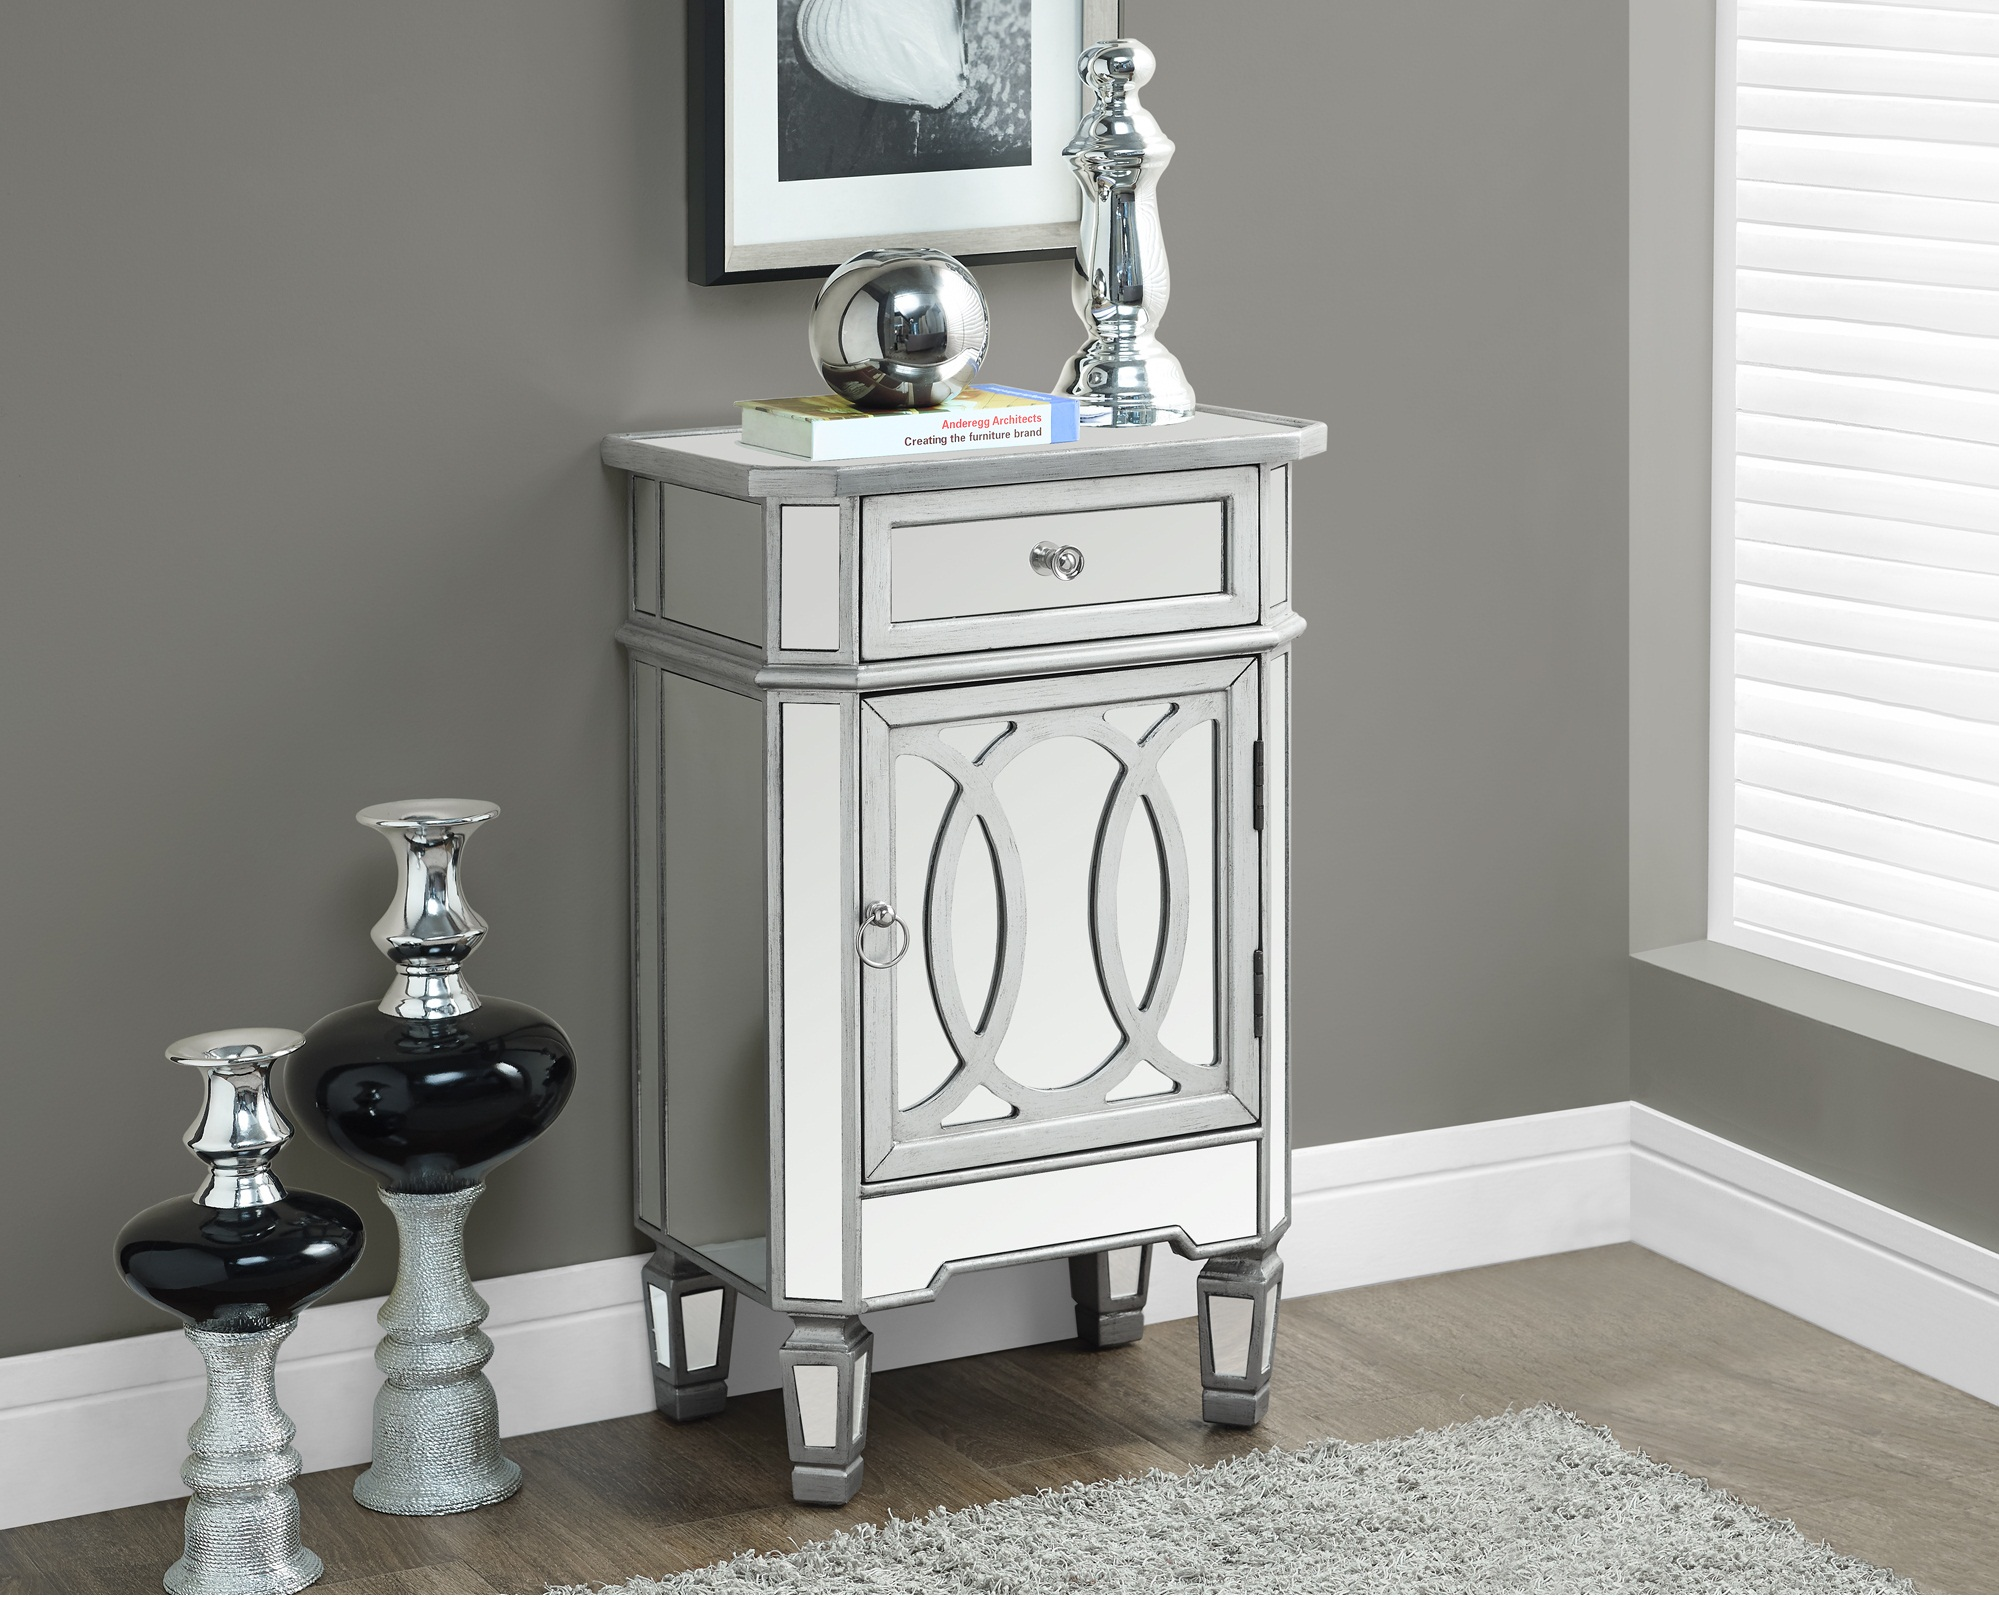 the perfect cool mirrored glass accent table with drawer tures end tables tabless furniture single brushed surprise from side for tall corner square mirror drawers very full size